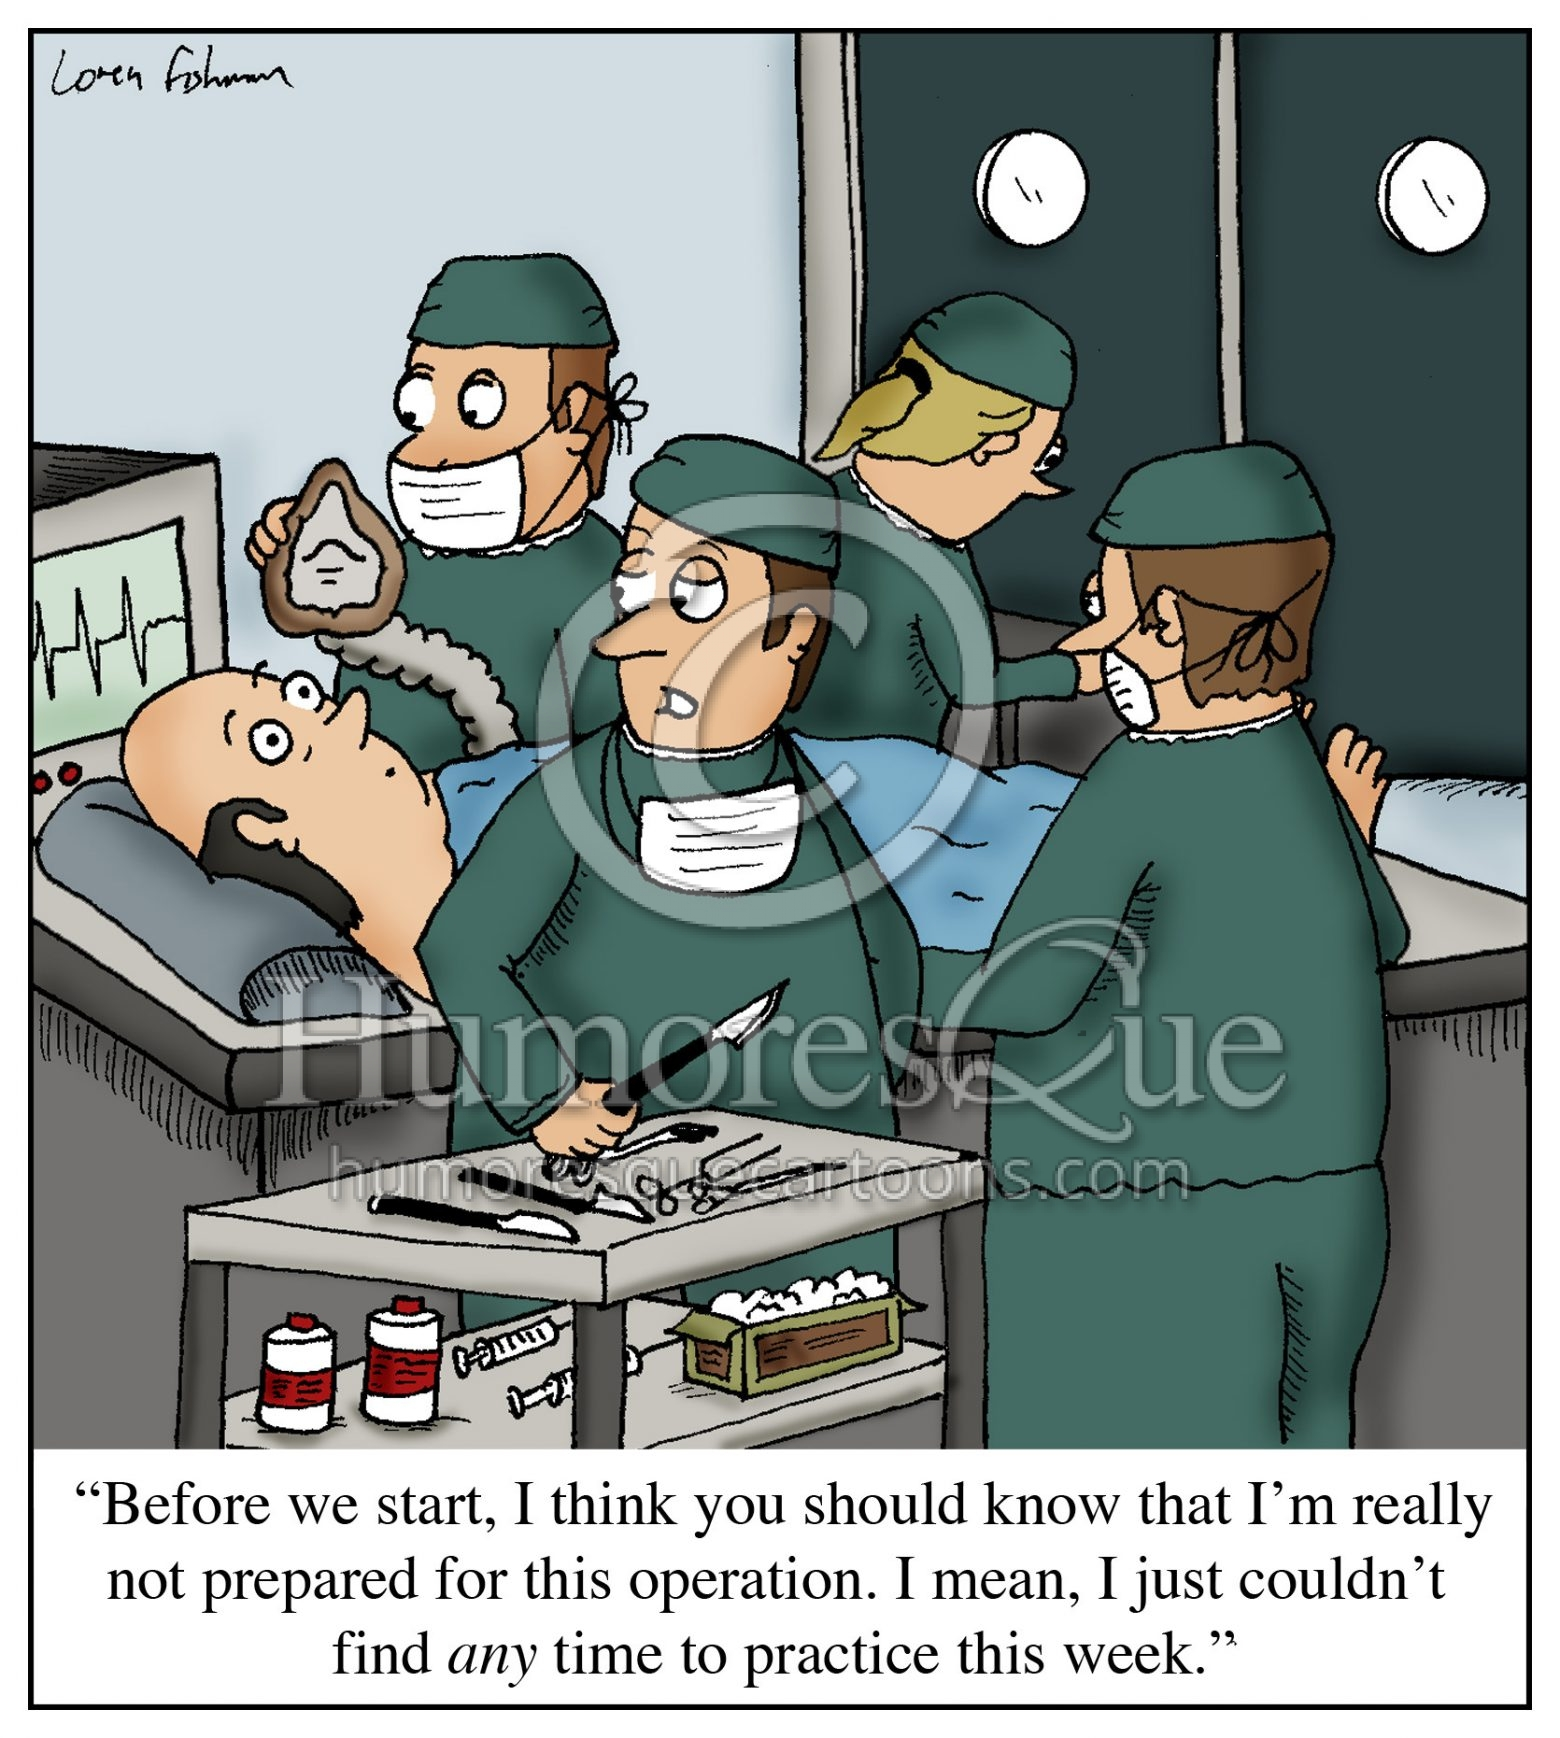 no time to practice surgeon music lesson cartoon